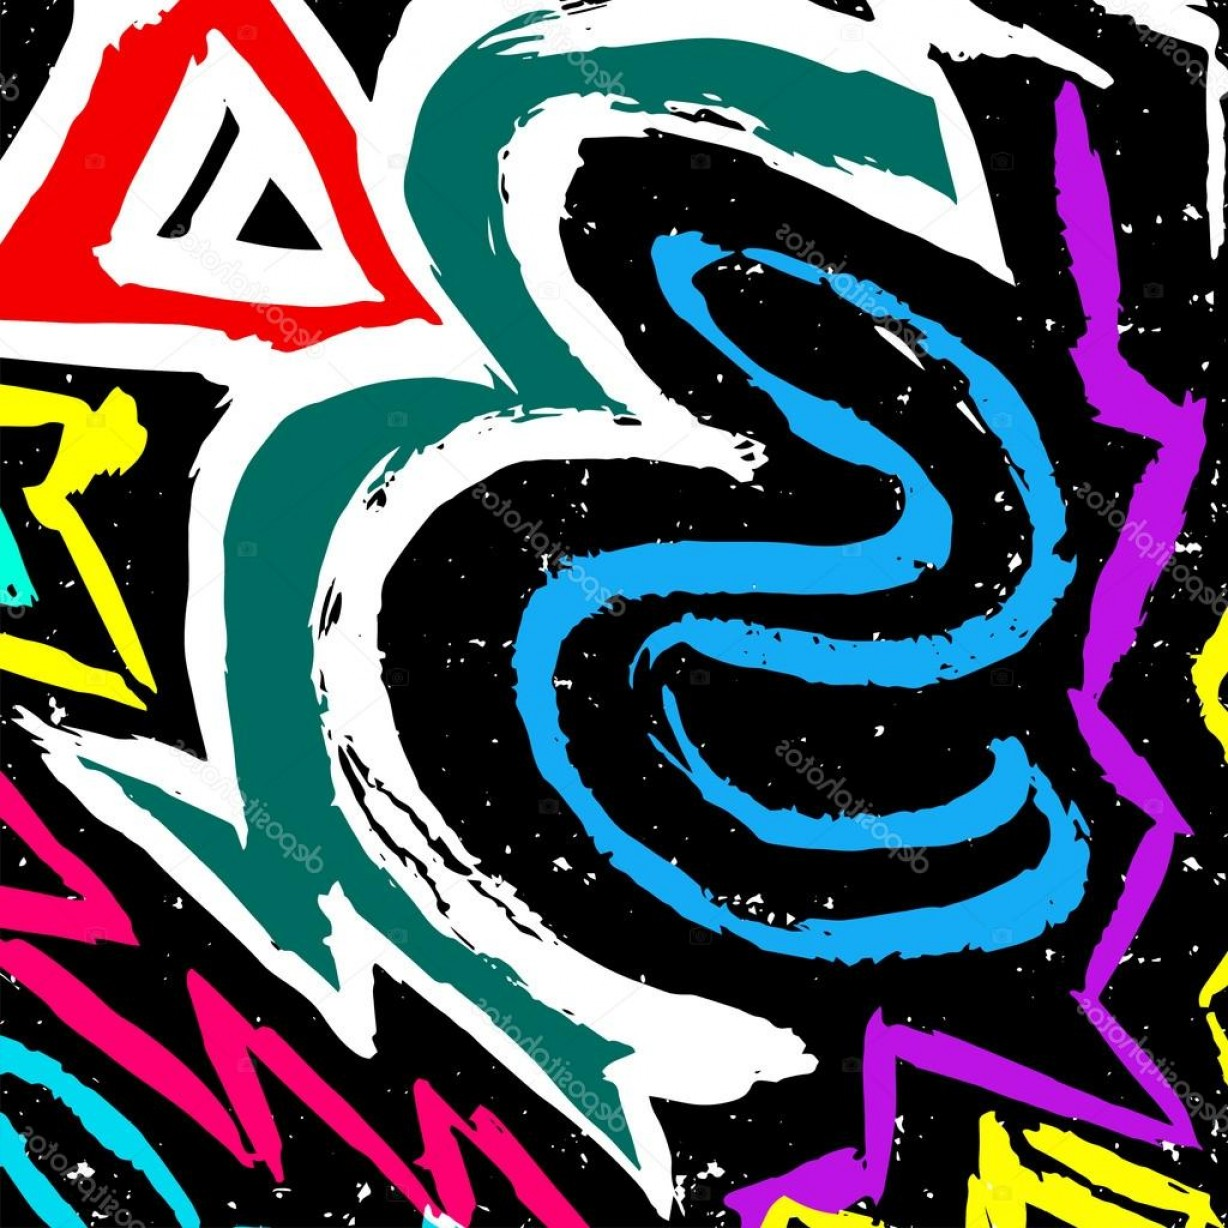 Graffiti Lines Vector: Stock Illustration Color Graffiti Lines On A